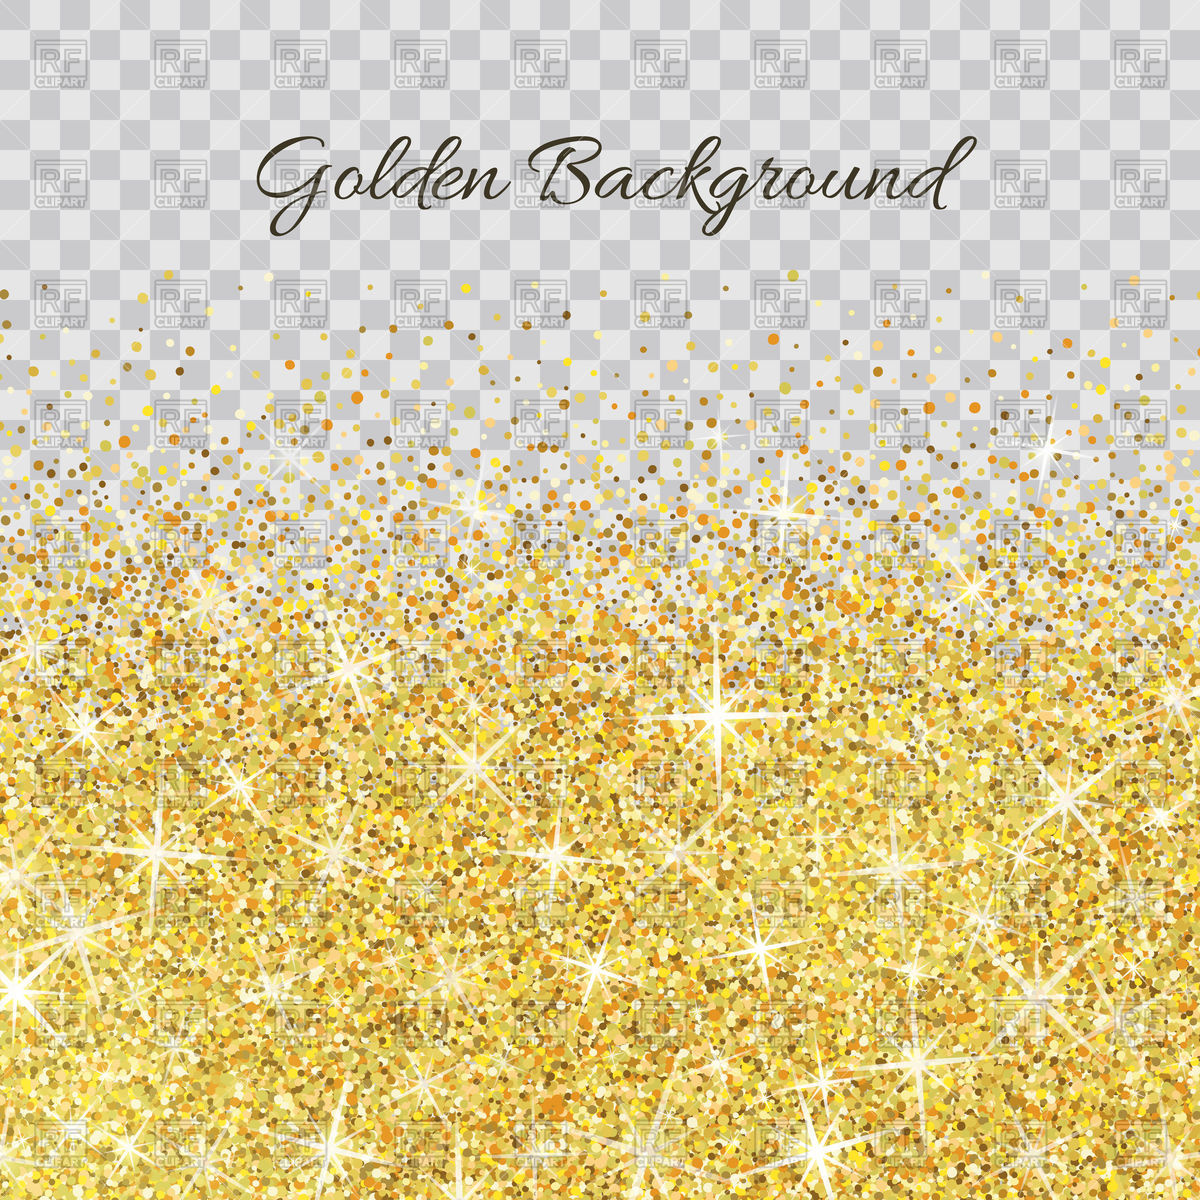 Glitter clipart gold abstract. Texture on transparent background clipart